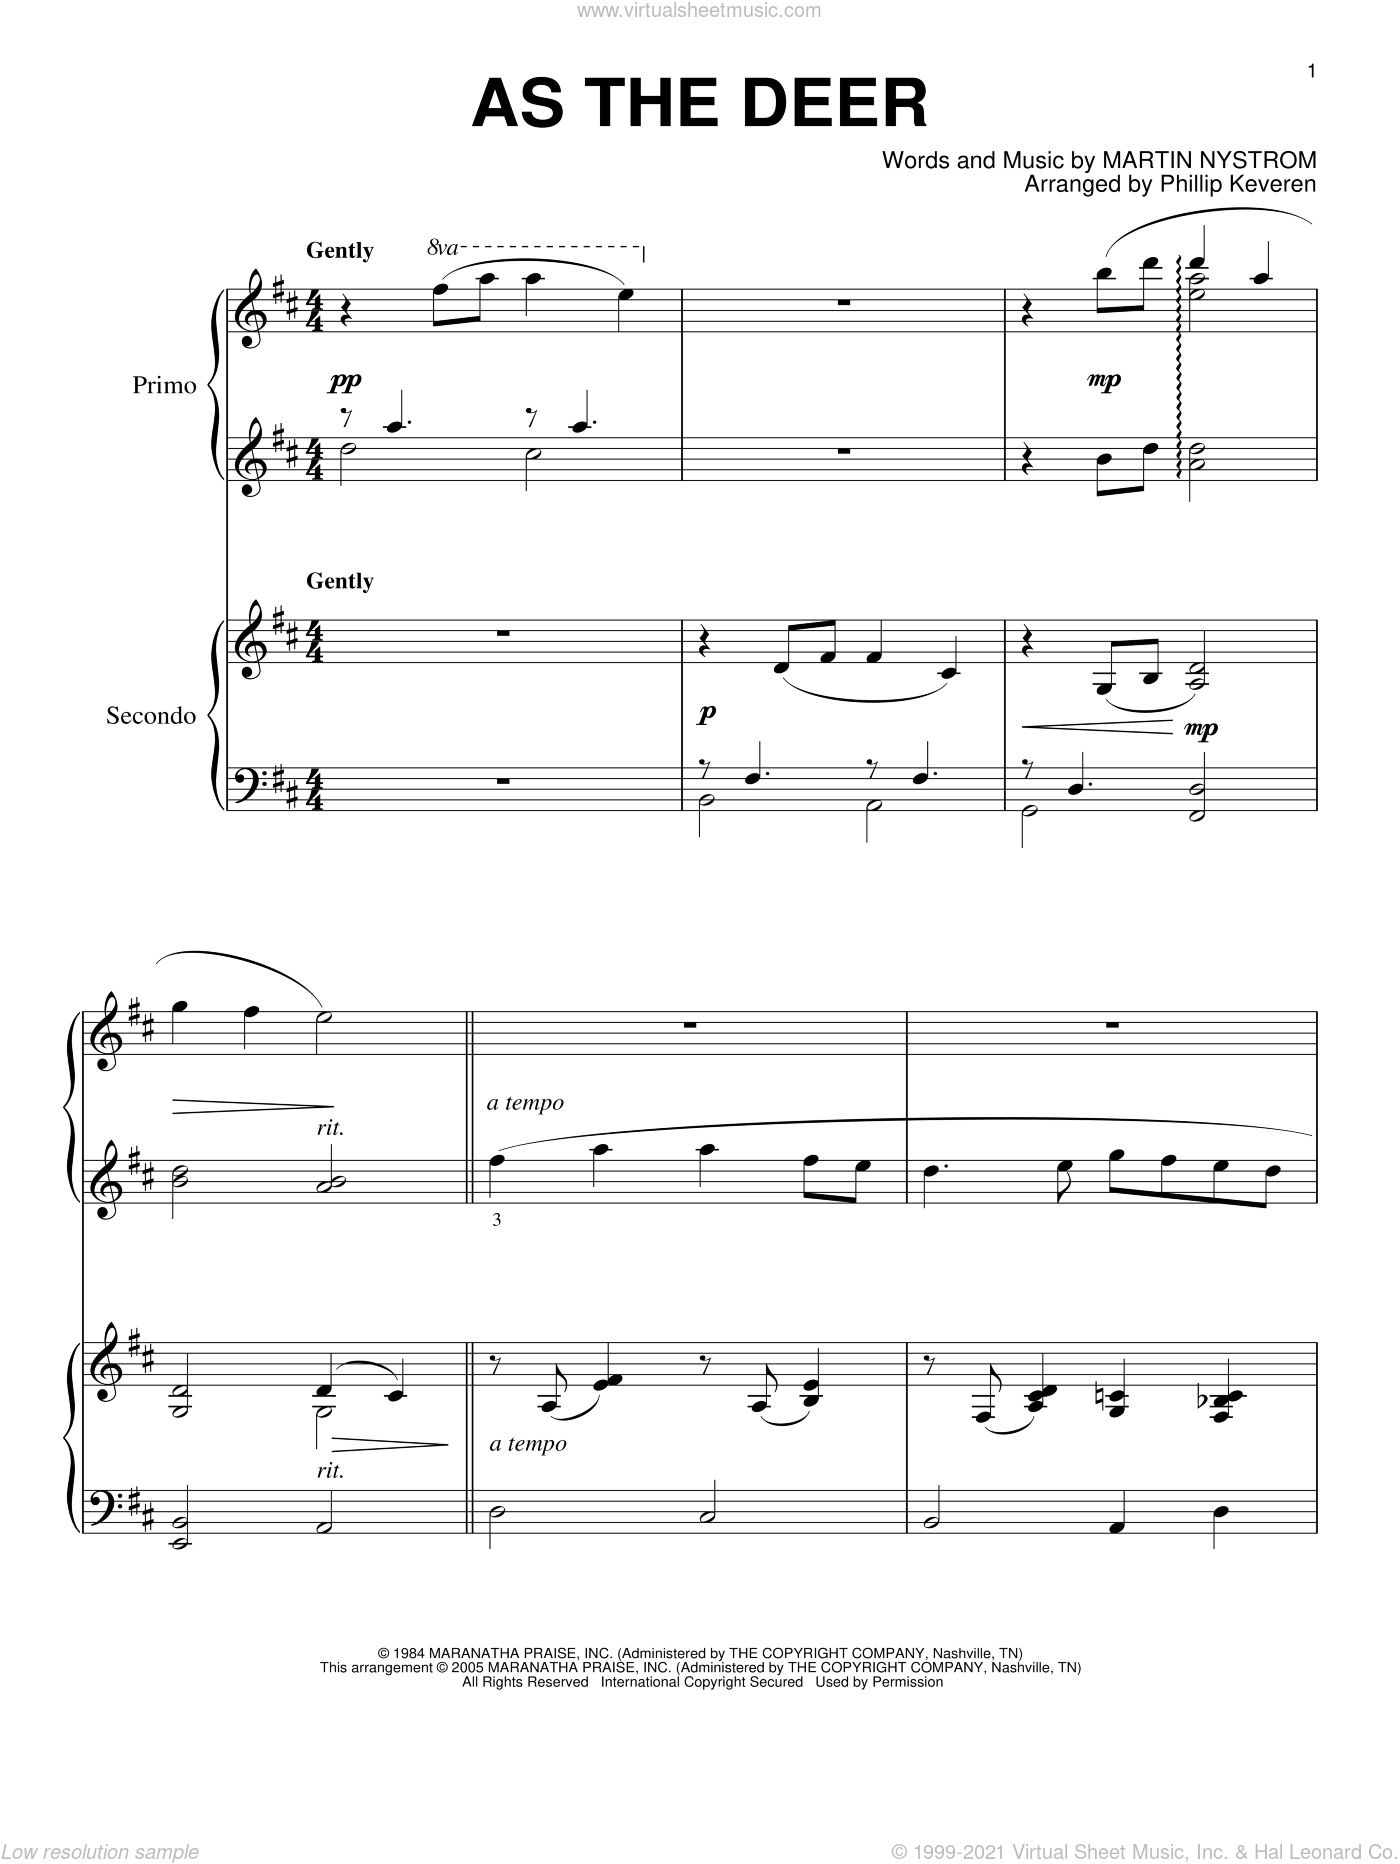 As The Deer sheet music for piano four hands by Phillip Keveren and Martin Nystrom, intermediate skill level